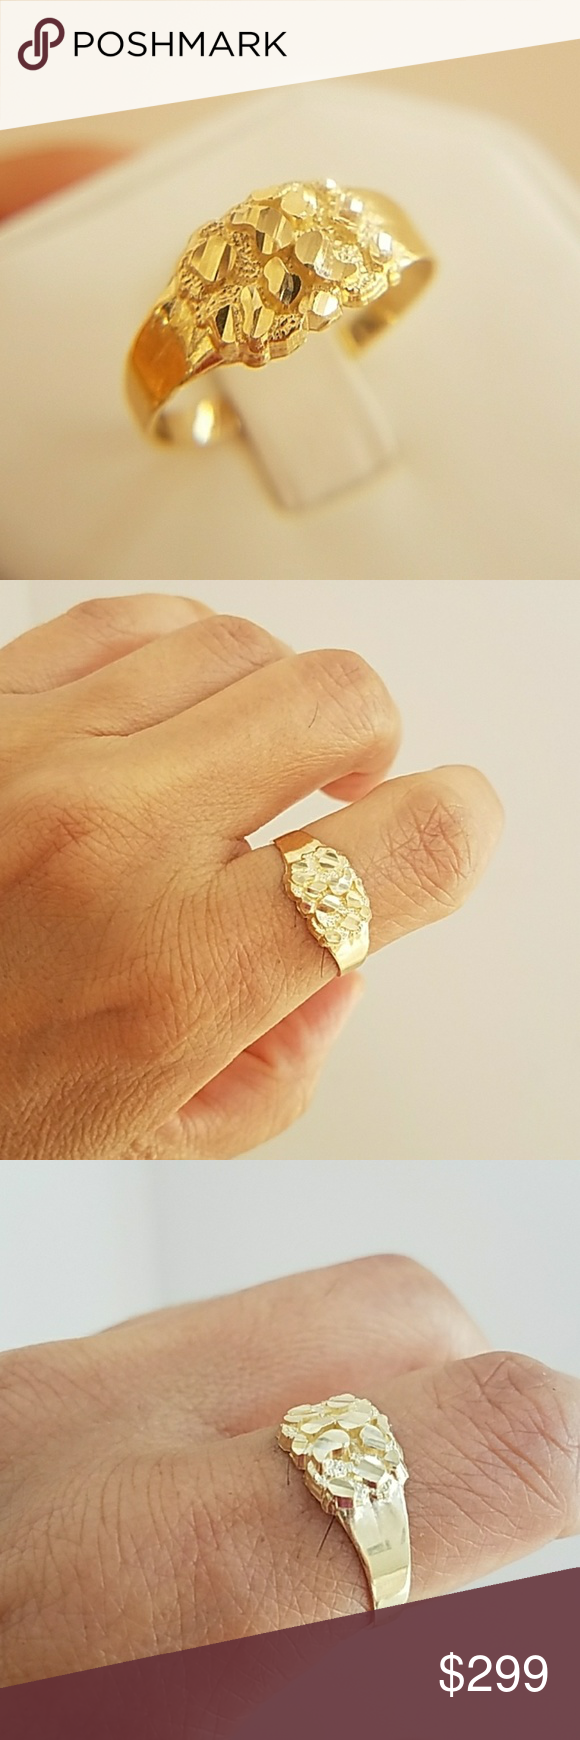 10k Solid Yellow Gold Nugget Halo Nugget Ring Gold Nugget Ring Gold Nugget Jewelry